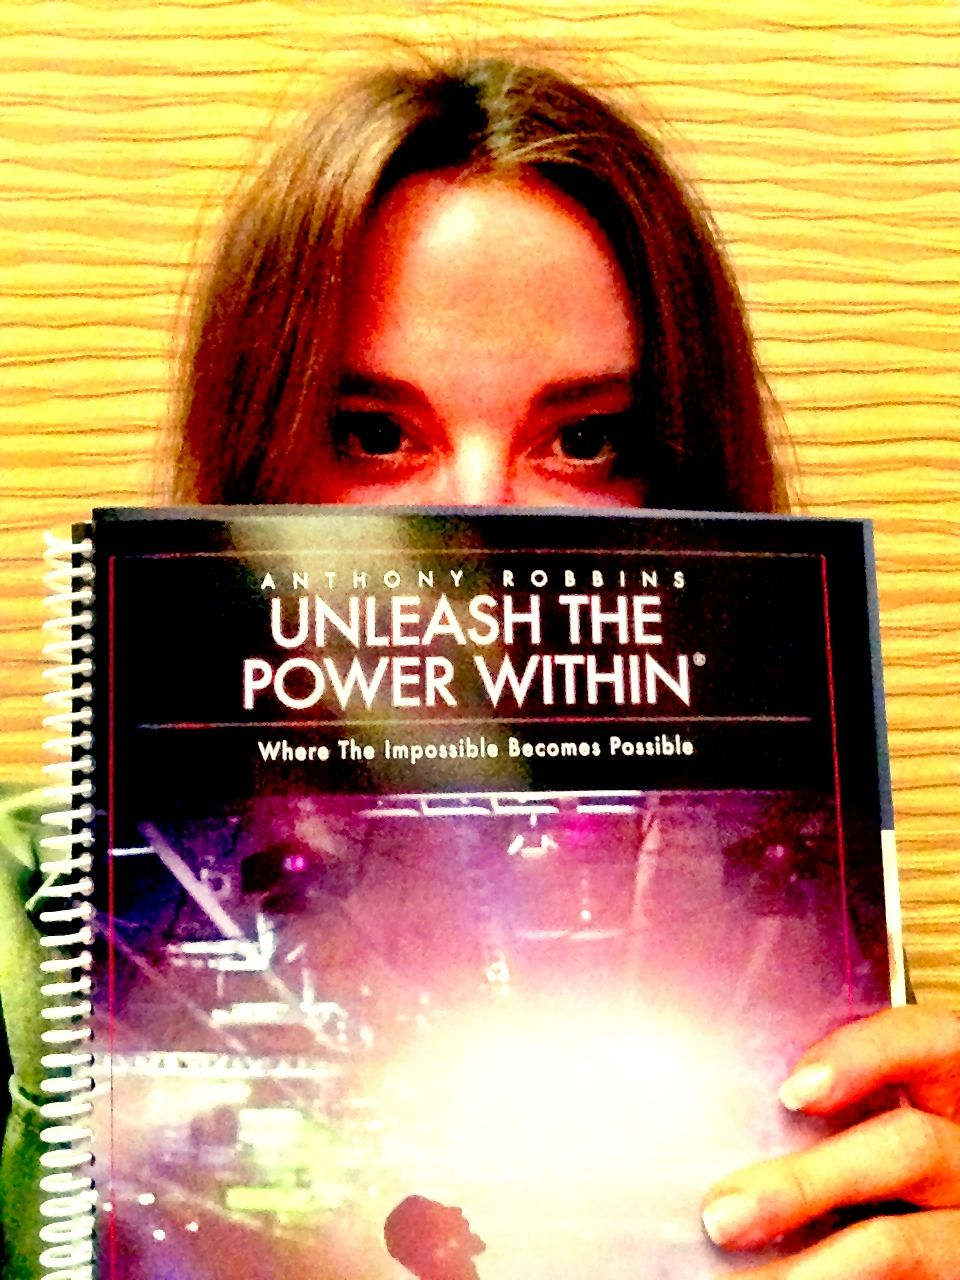 anthony robbins unleash the power within pdf